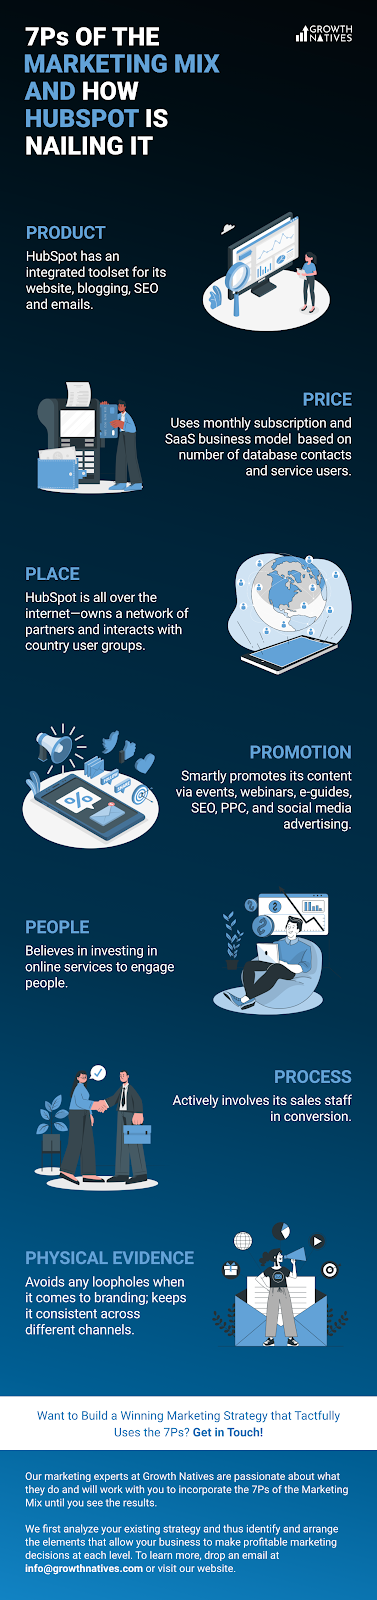 Infographic - See How HubSpot is Nailing the 7Ps of Marketing Mix